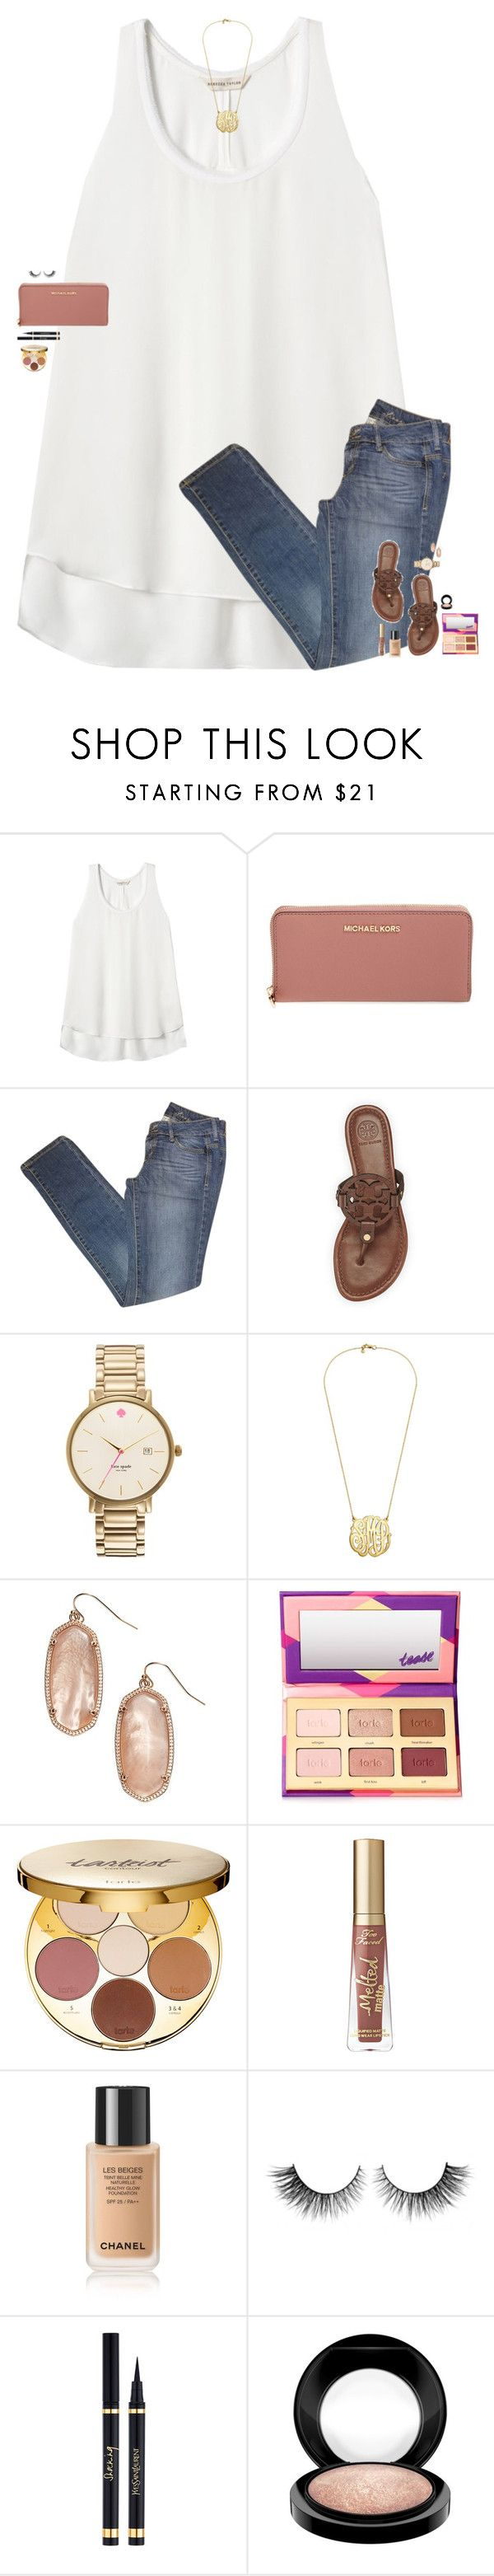 """""""If you lose me in a mall, just go to Sephora, I'll be there."""" by maggie-prep ❤ liked on Polyvore featuring Rebecca Taylor, MICHAEL Michael Kors, MANGO, Tory Burch, Kate Spade, Kendra Scott, tarte, Rimini, Yves Saint Laurent and MAC Cosmetics"""